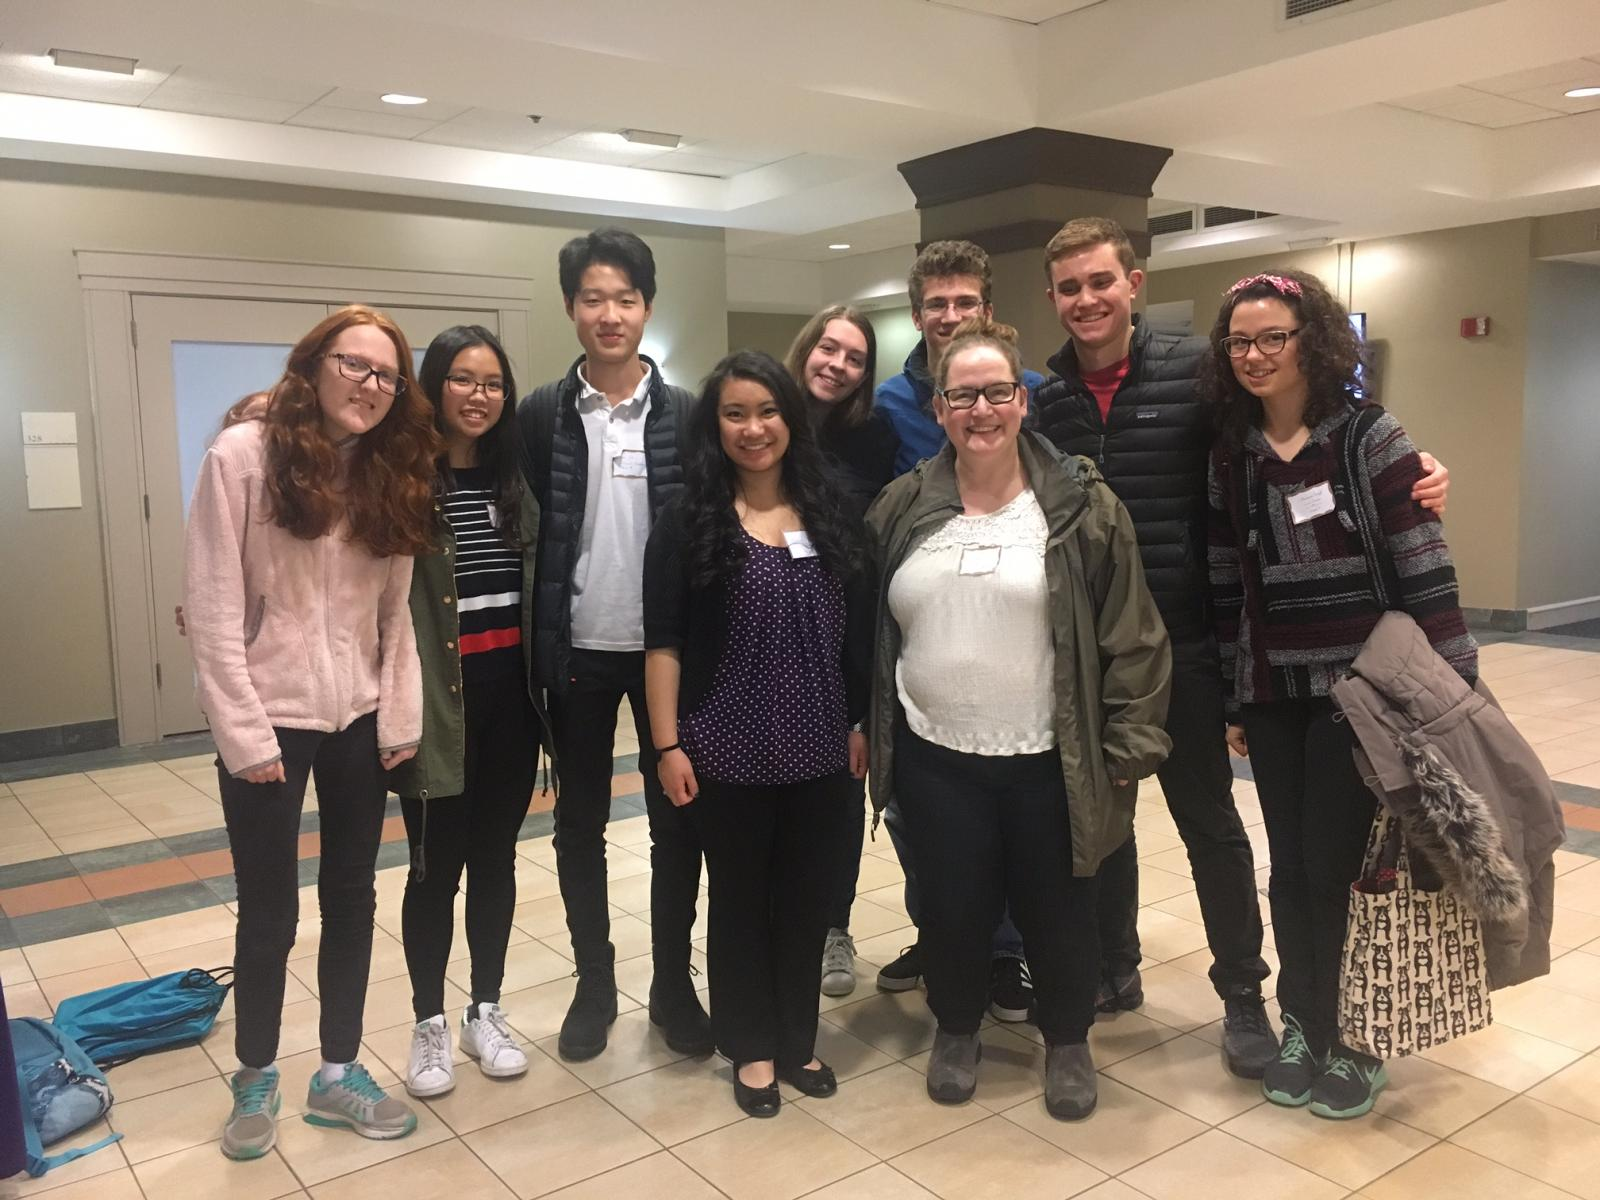 Concord Academy students Katie Painter, Cherie Jiraphanphong, Roger Ge, Lauren Mazza, Liam Yanulis, Ben Zide and Michaela Trieloff with Hackathon organizer Hannah Nguyen and Magistra Liz Penland. Photo credit: Lauren Mazza